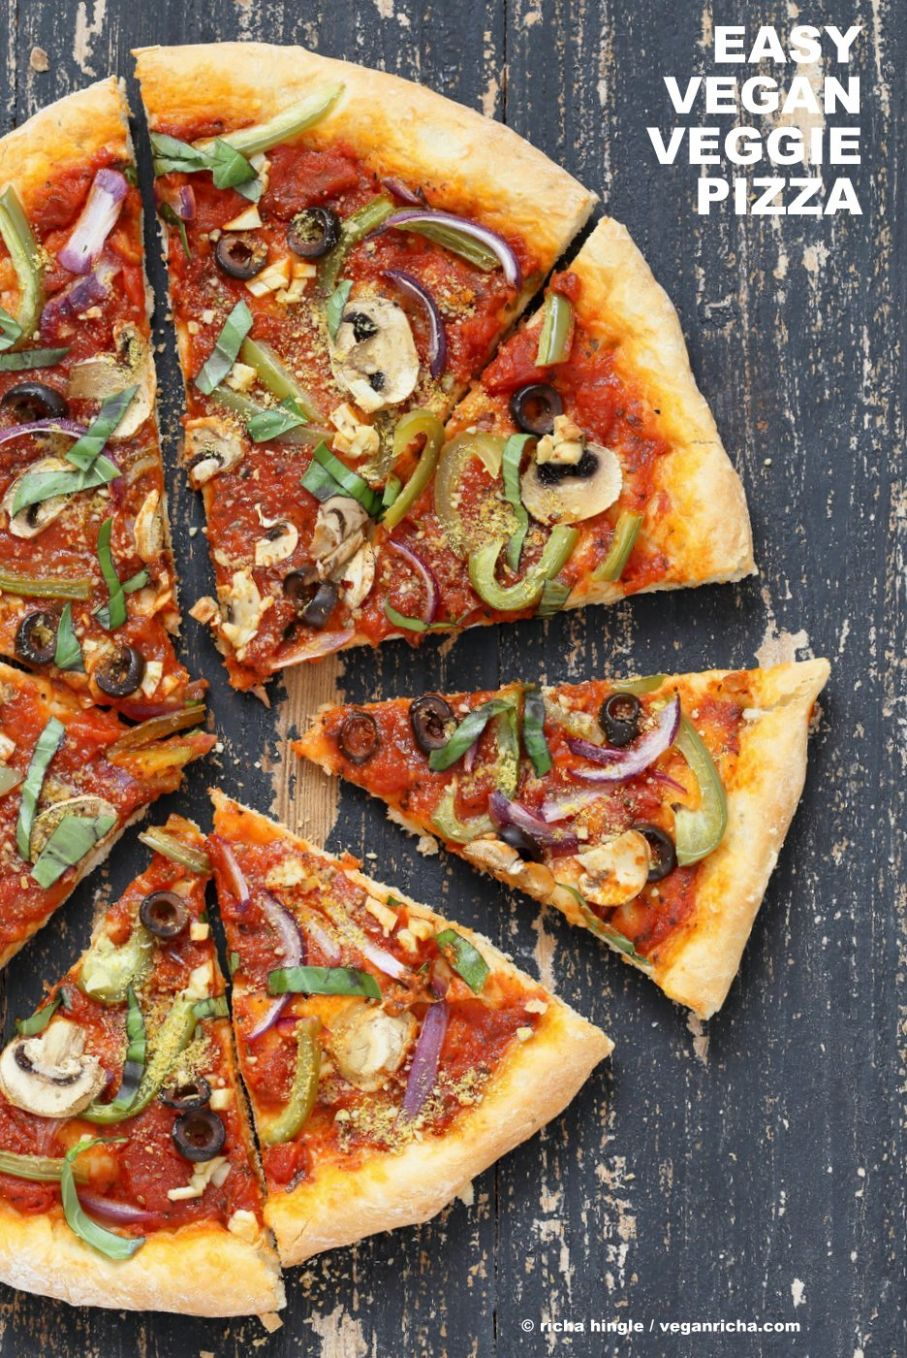 Easy Veggie Vegan Pizza with 12 minute Crust - Recipes Vegetable Pizza